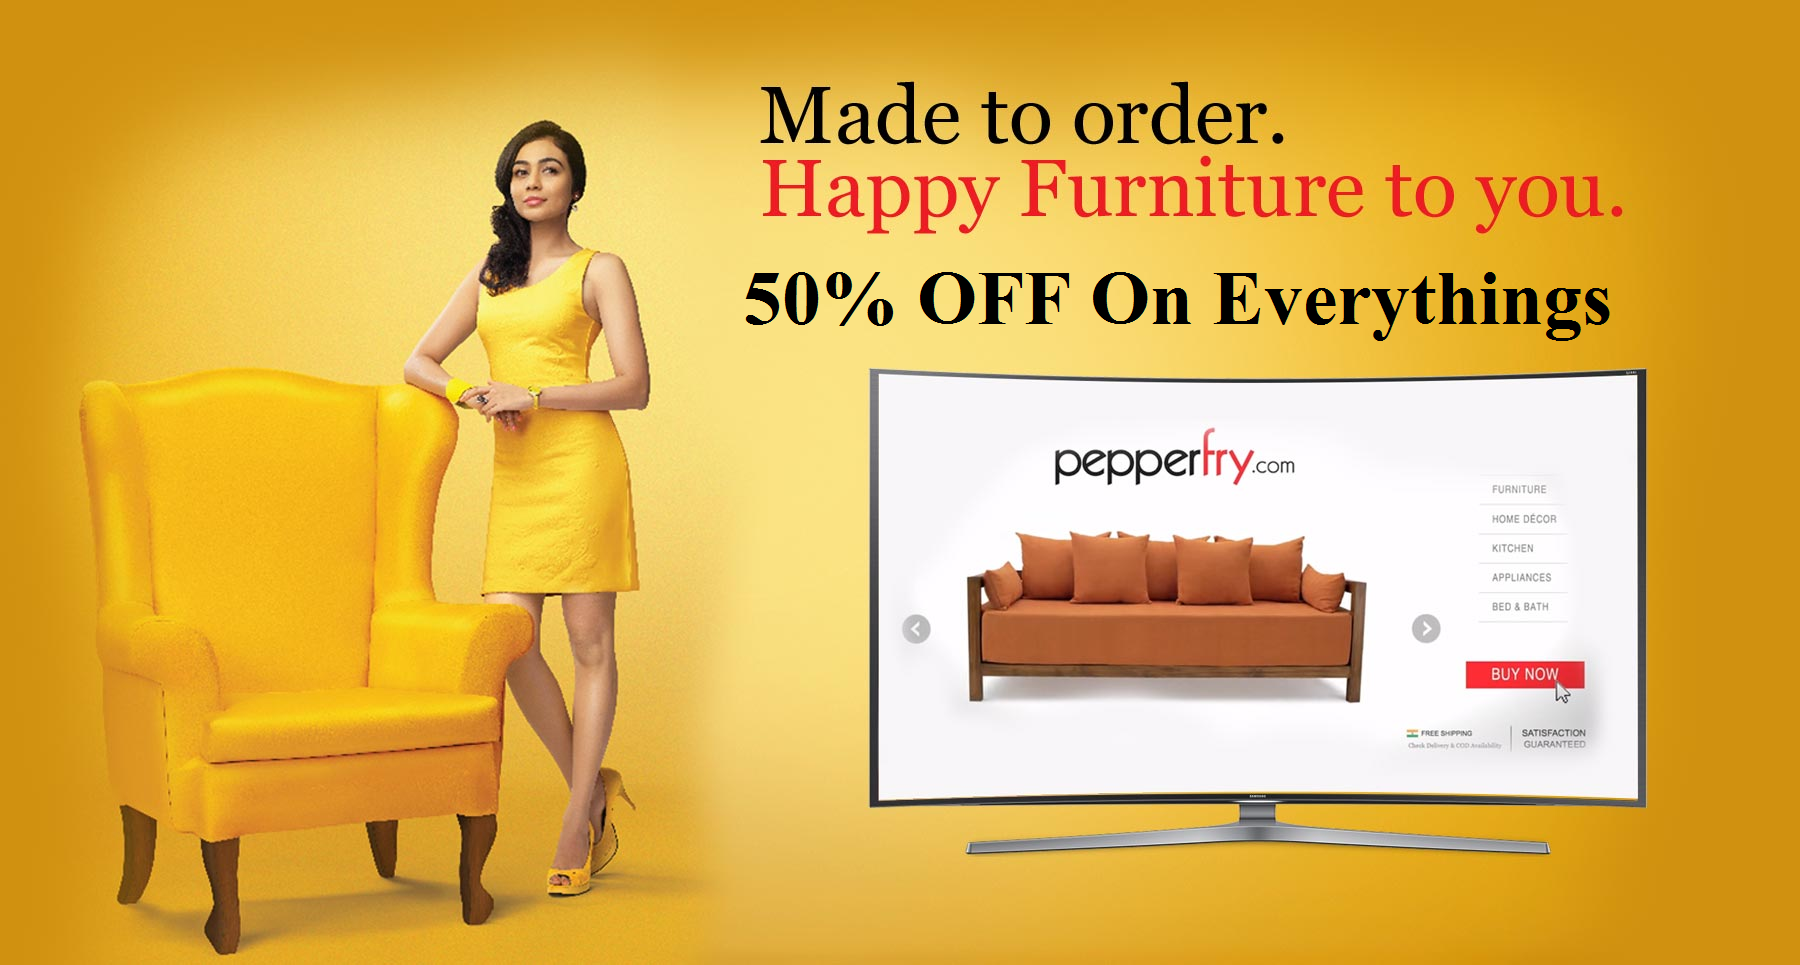 pepperfry_offer